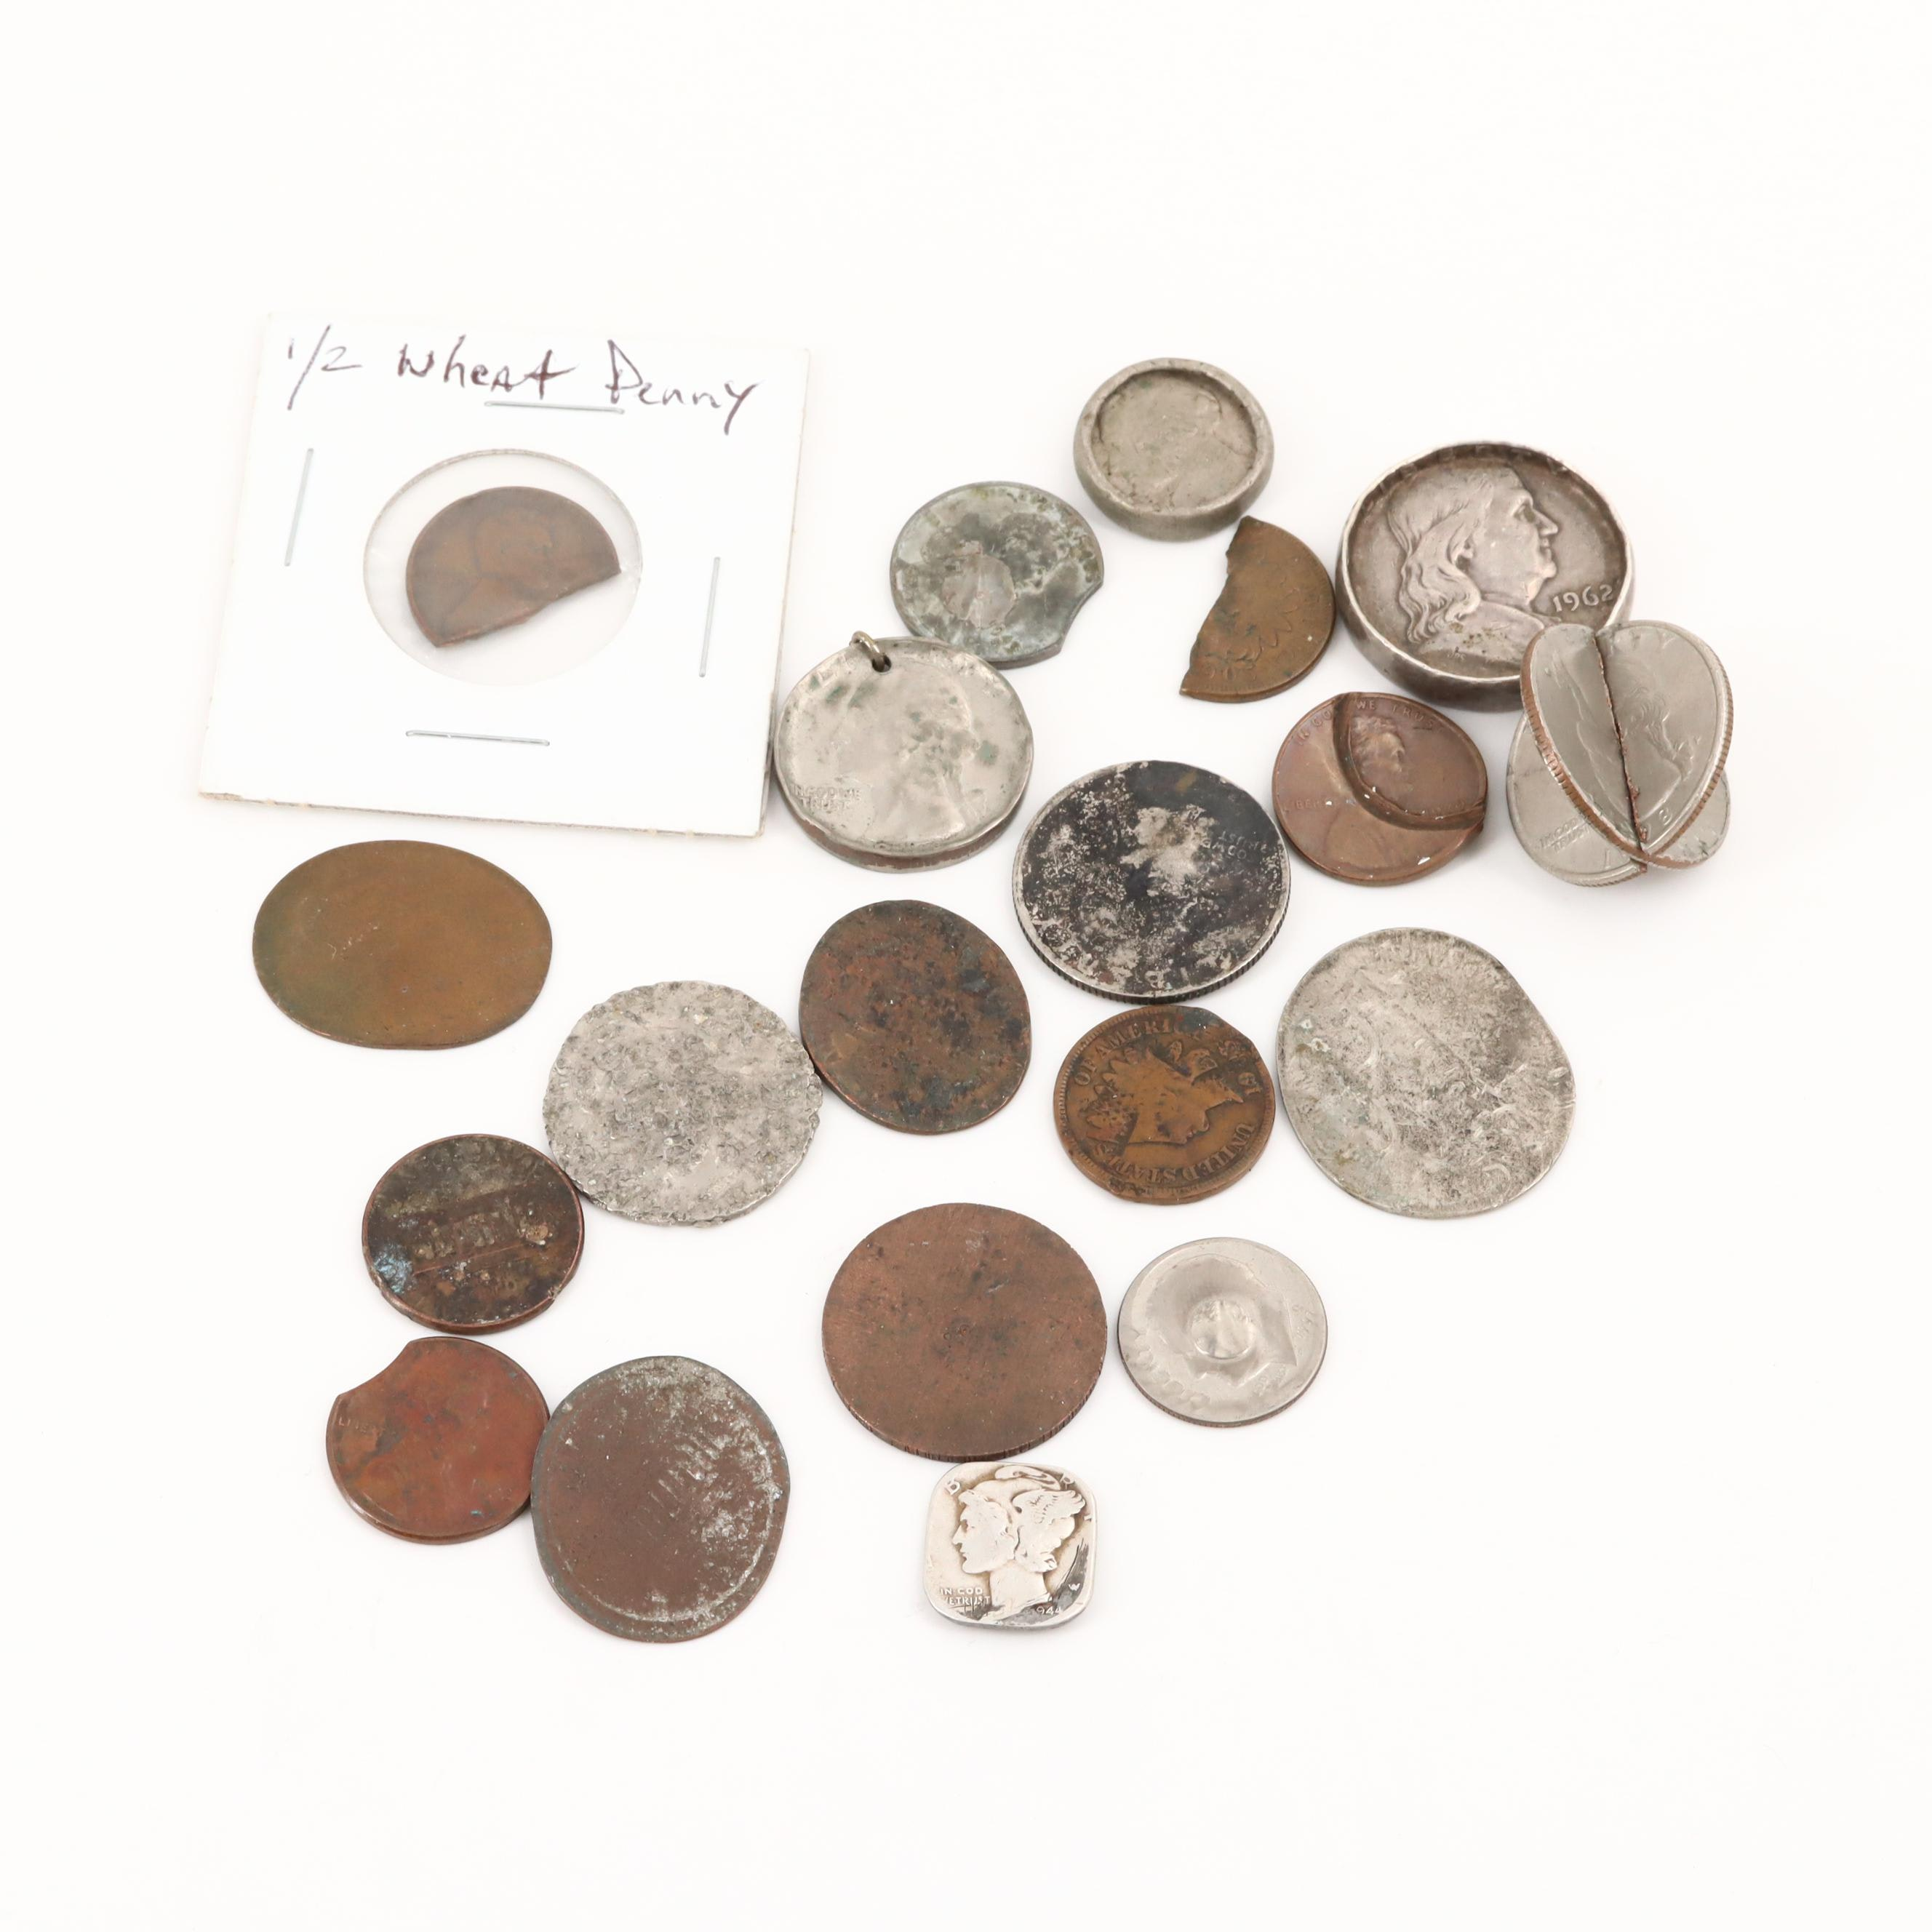 Various Modified /Damaged American Coins Featuring 1944 Squared Mercury Dime